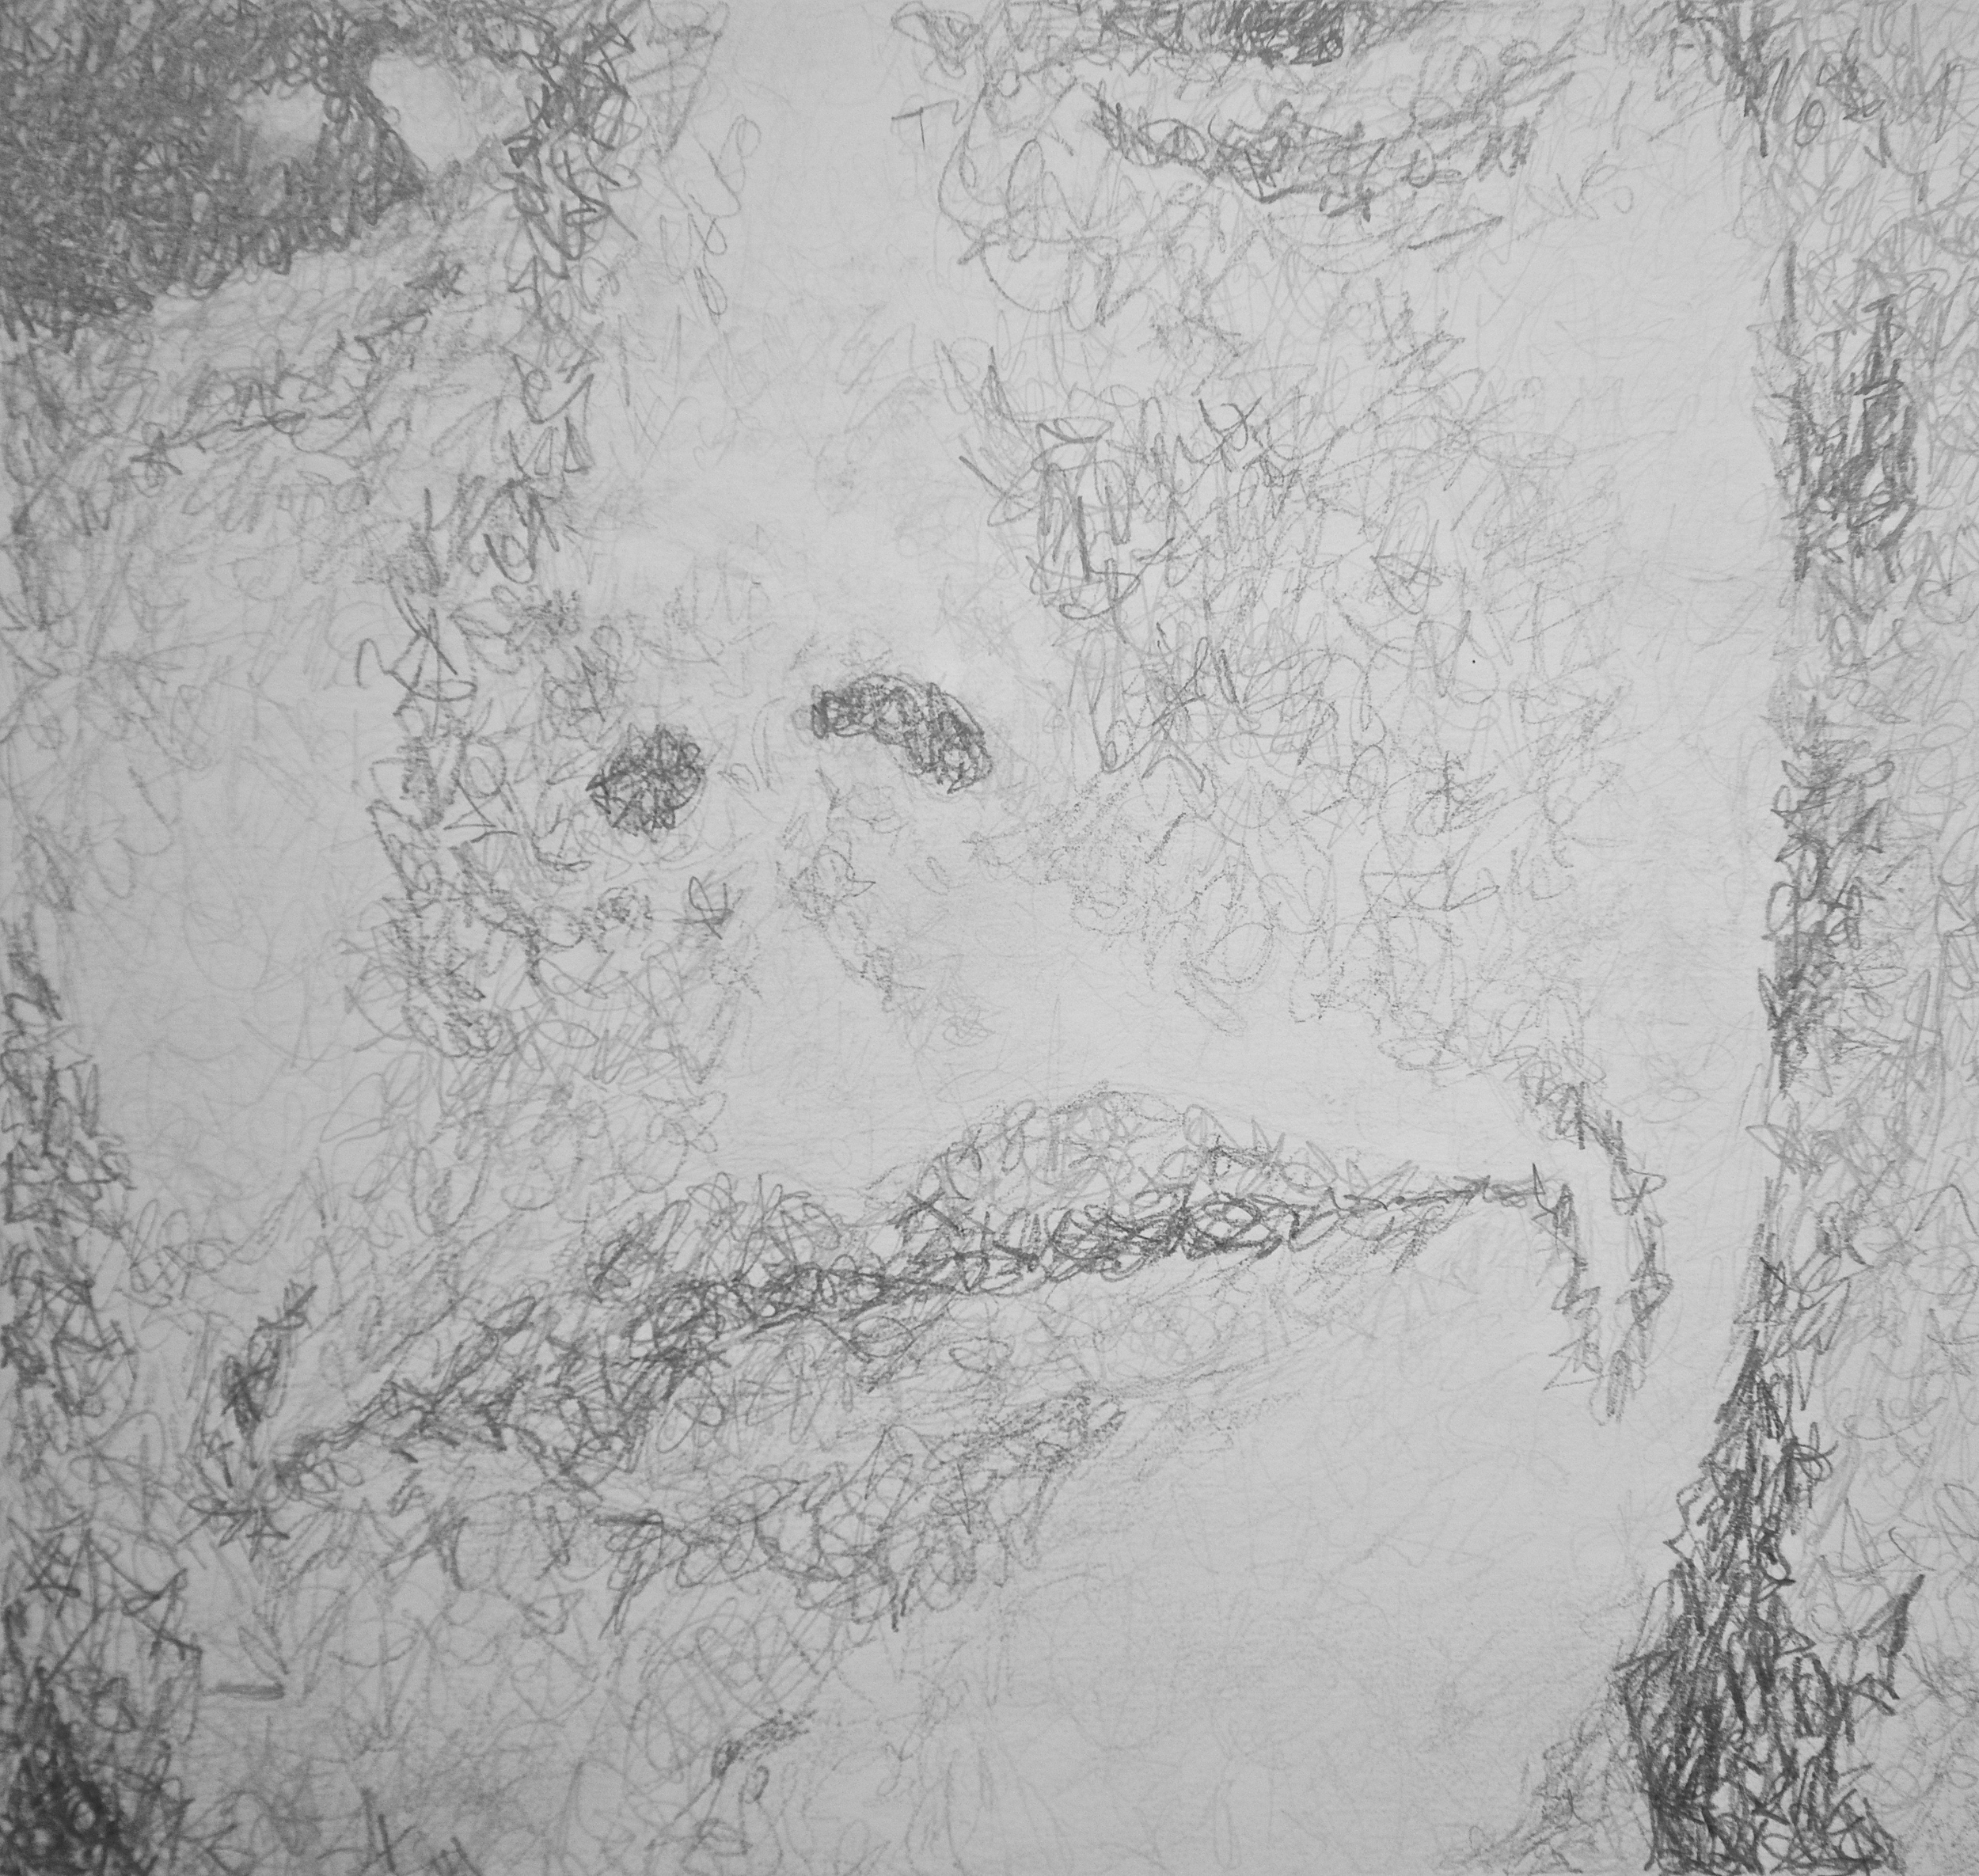 A close up of the crosshatching I used to vary the shades of pencil.